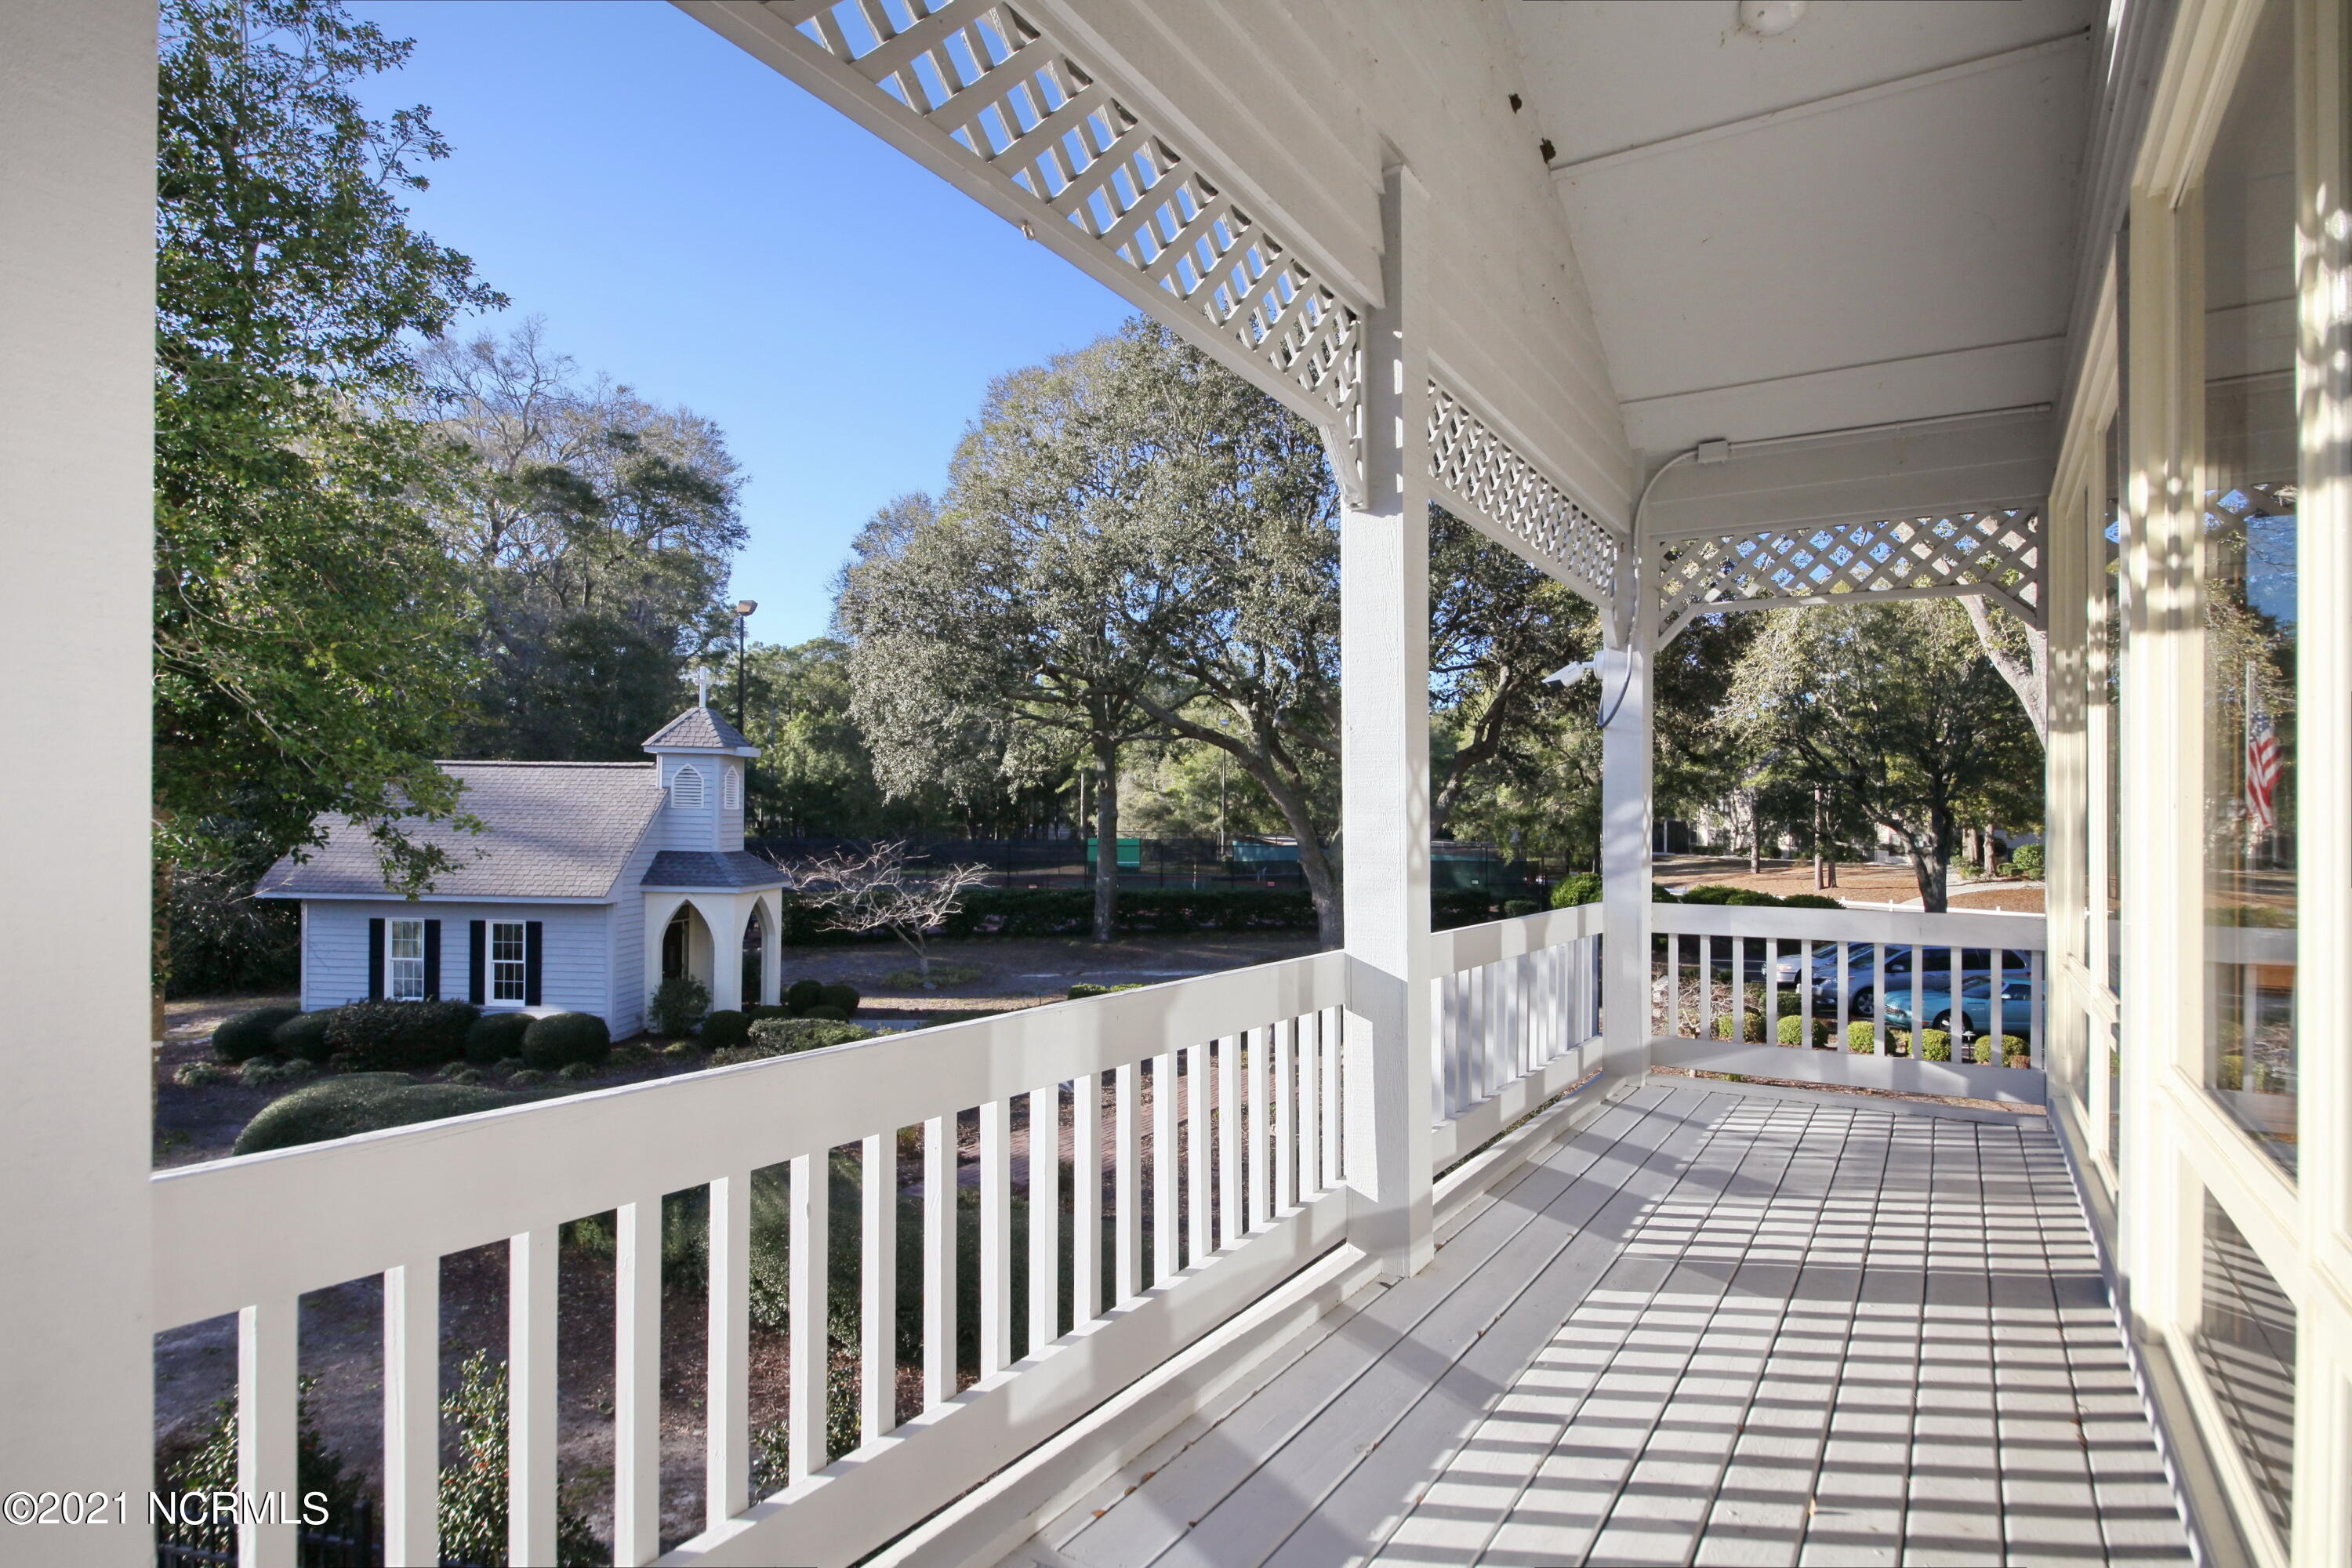 Lot 33 Oyster Pointe Drive, Sunset Beach, North Carolina 28468, ,Residential land,For sale,Oyster Pointe,100266275